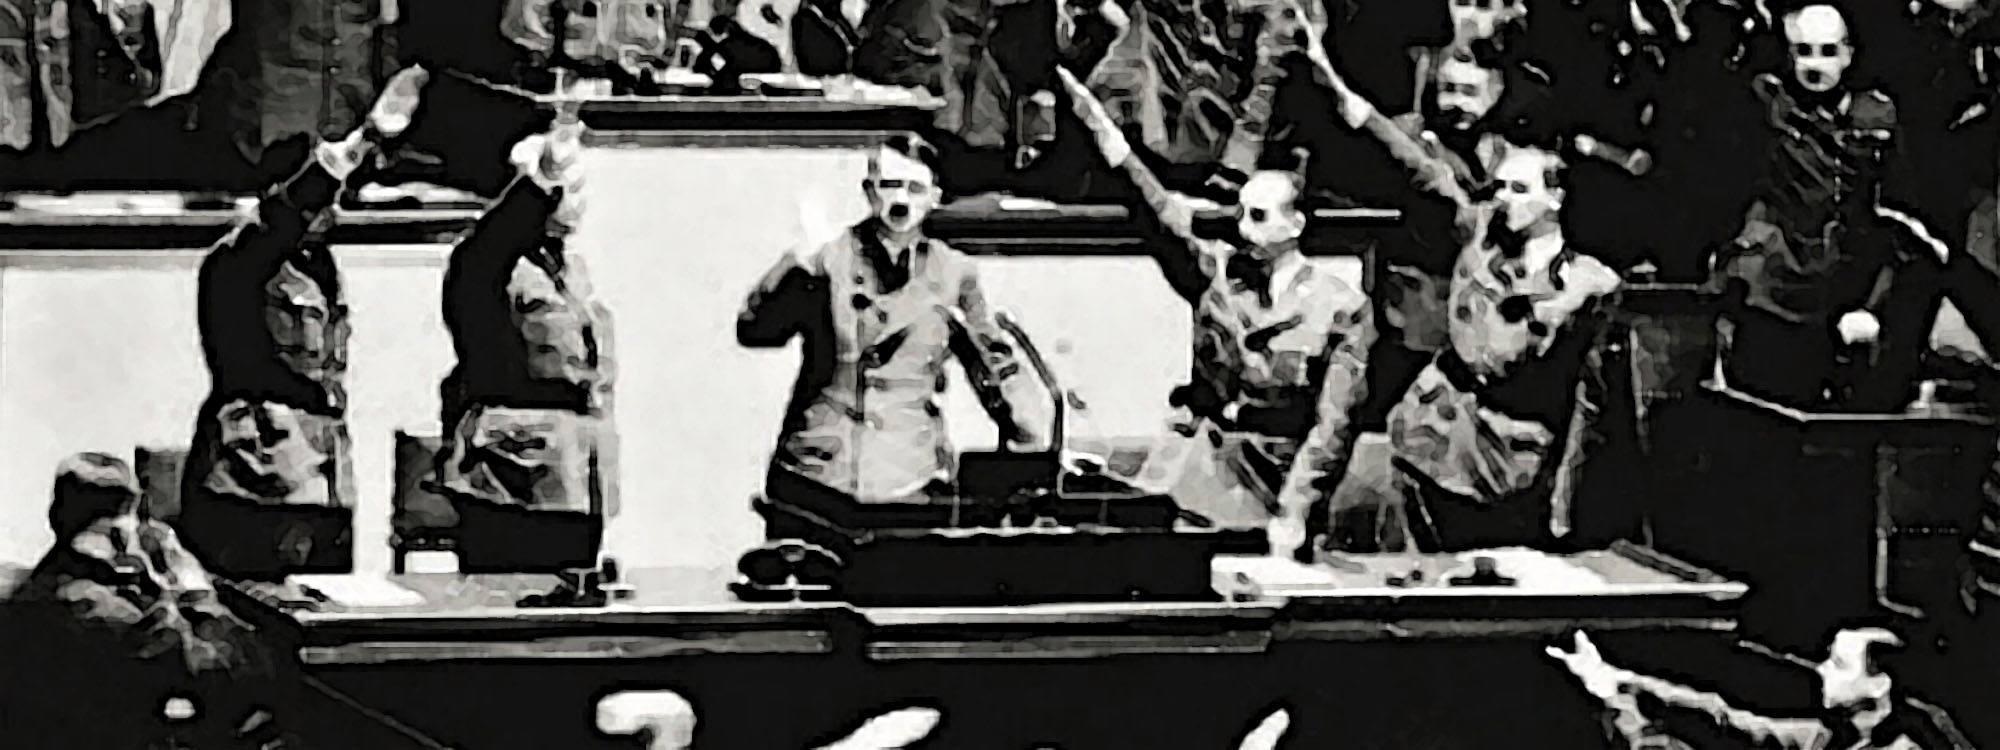 Eminent Military Historian G.L. Weinberg on 'Adolf Hitler and the United States'